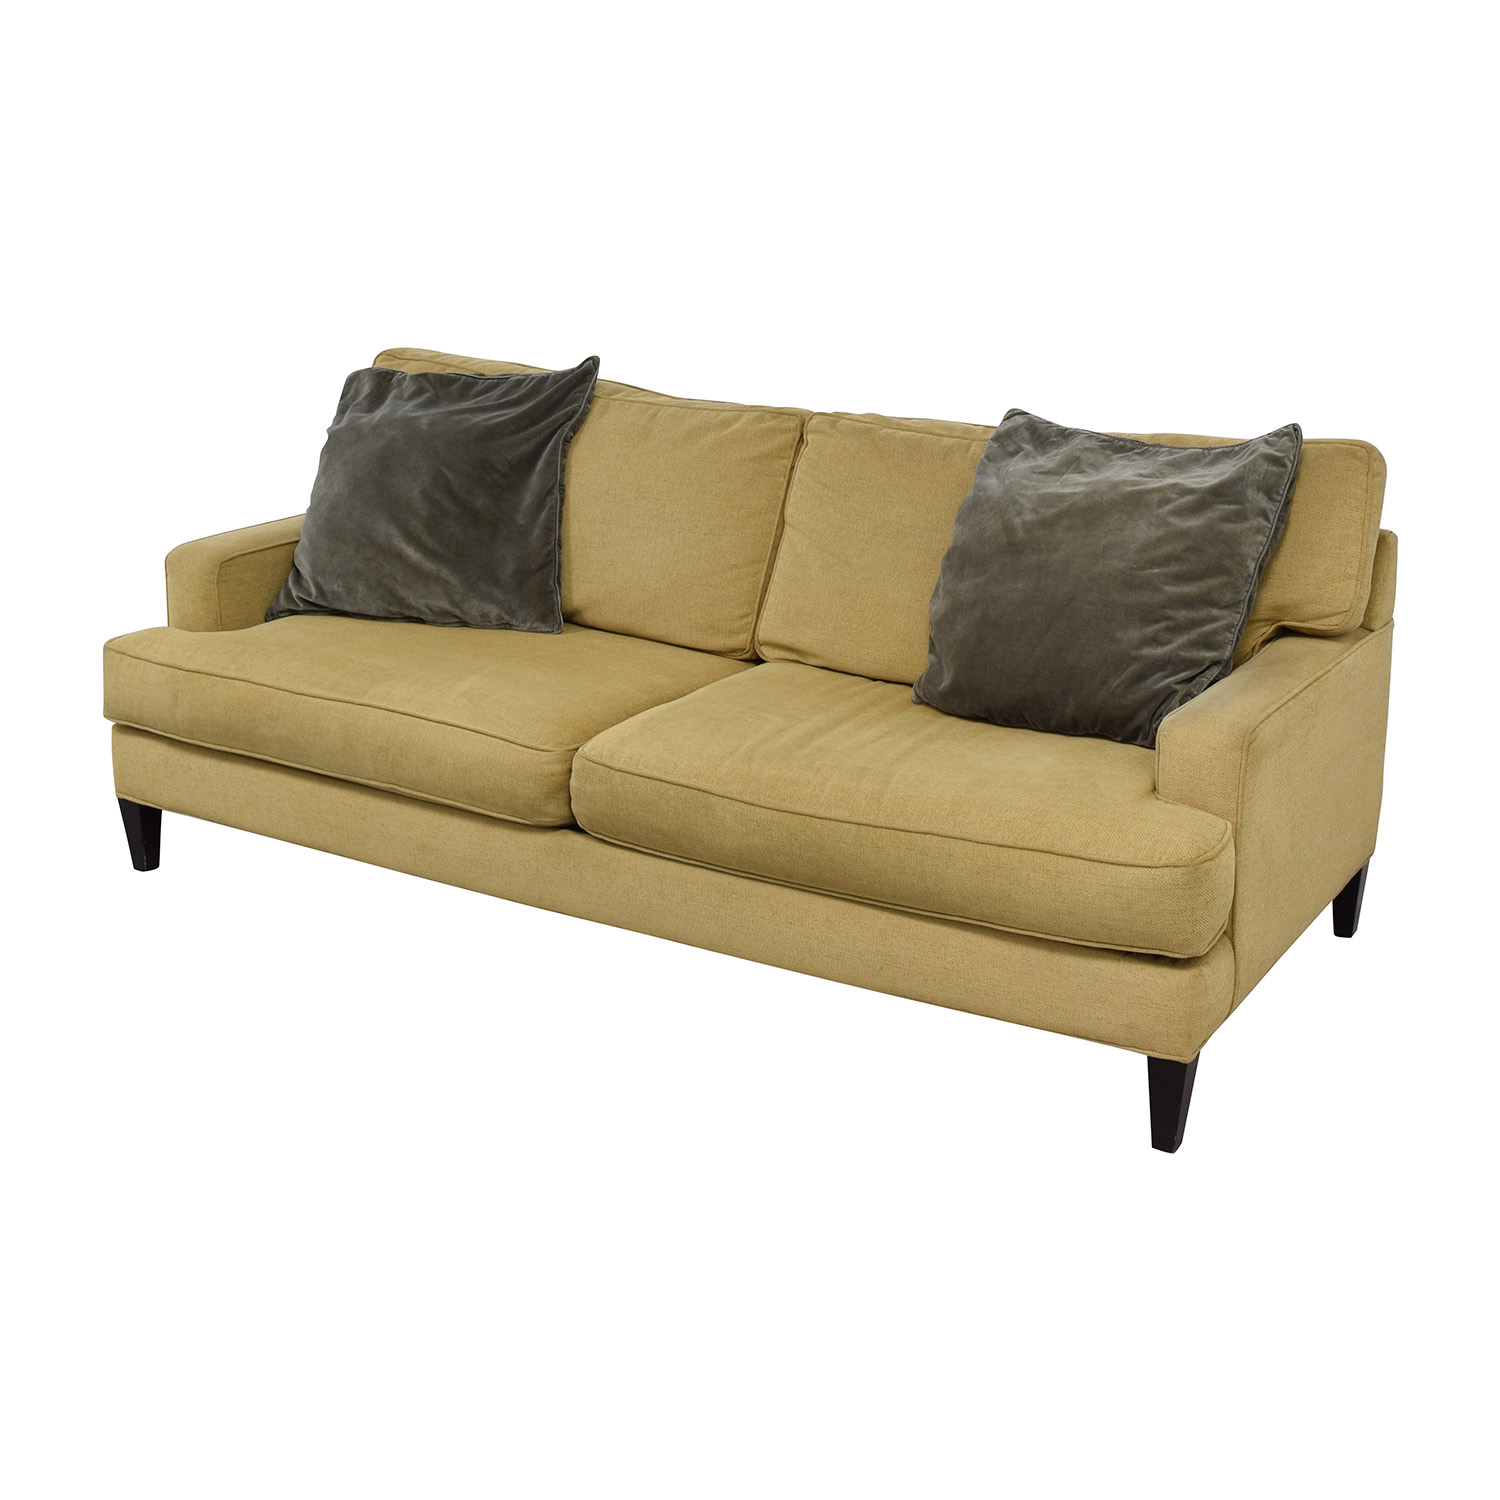 room and board sectional sofa bed standard two seater size 64 off beige cushion